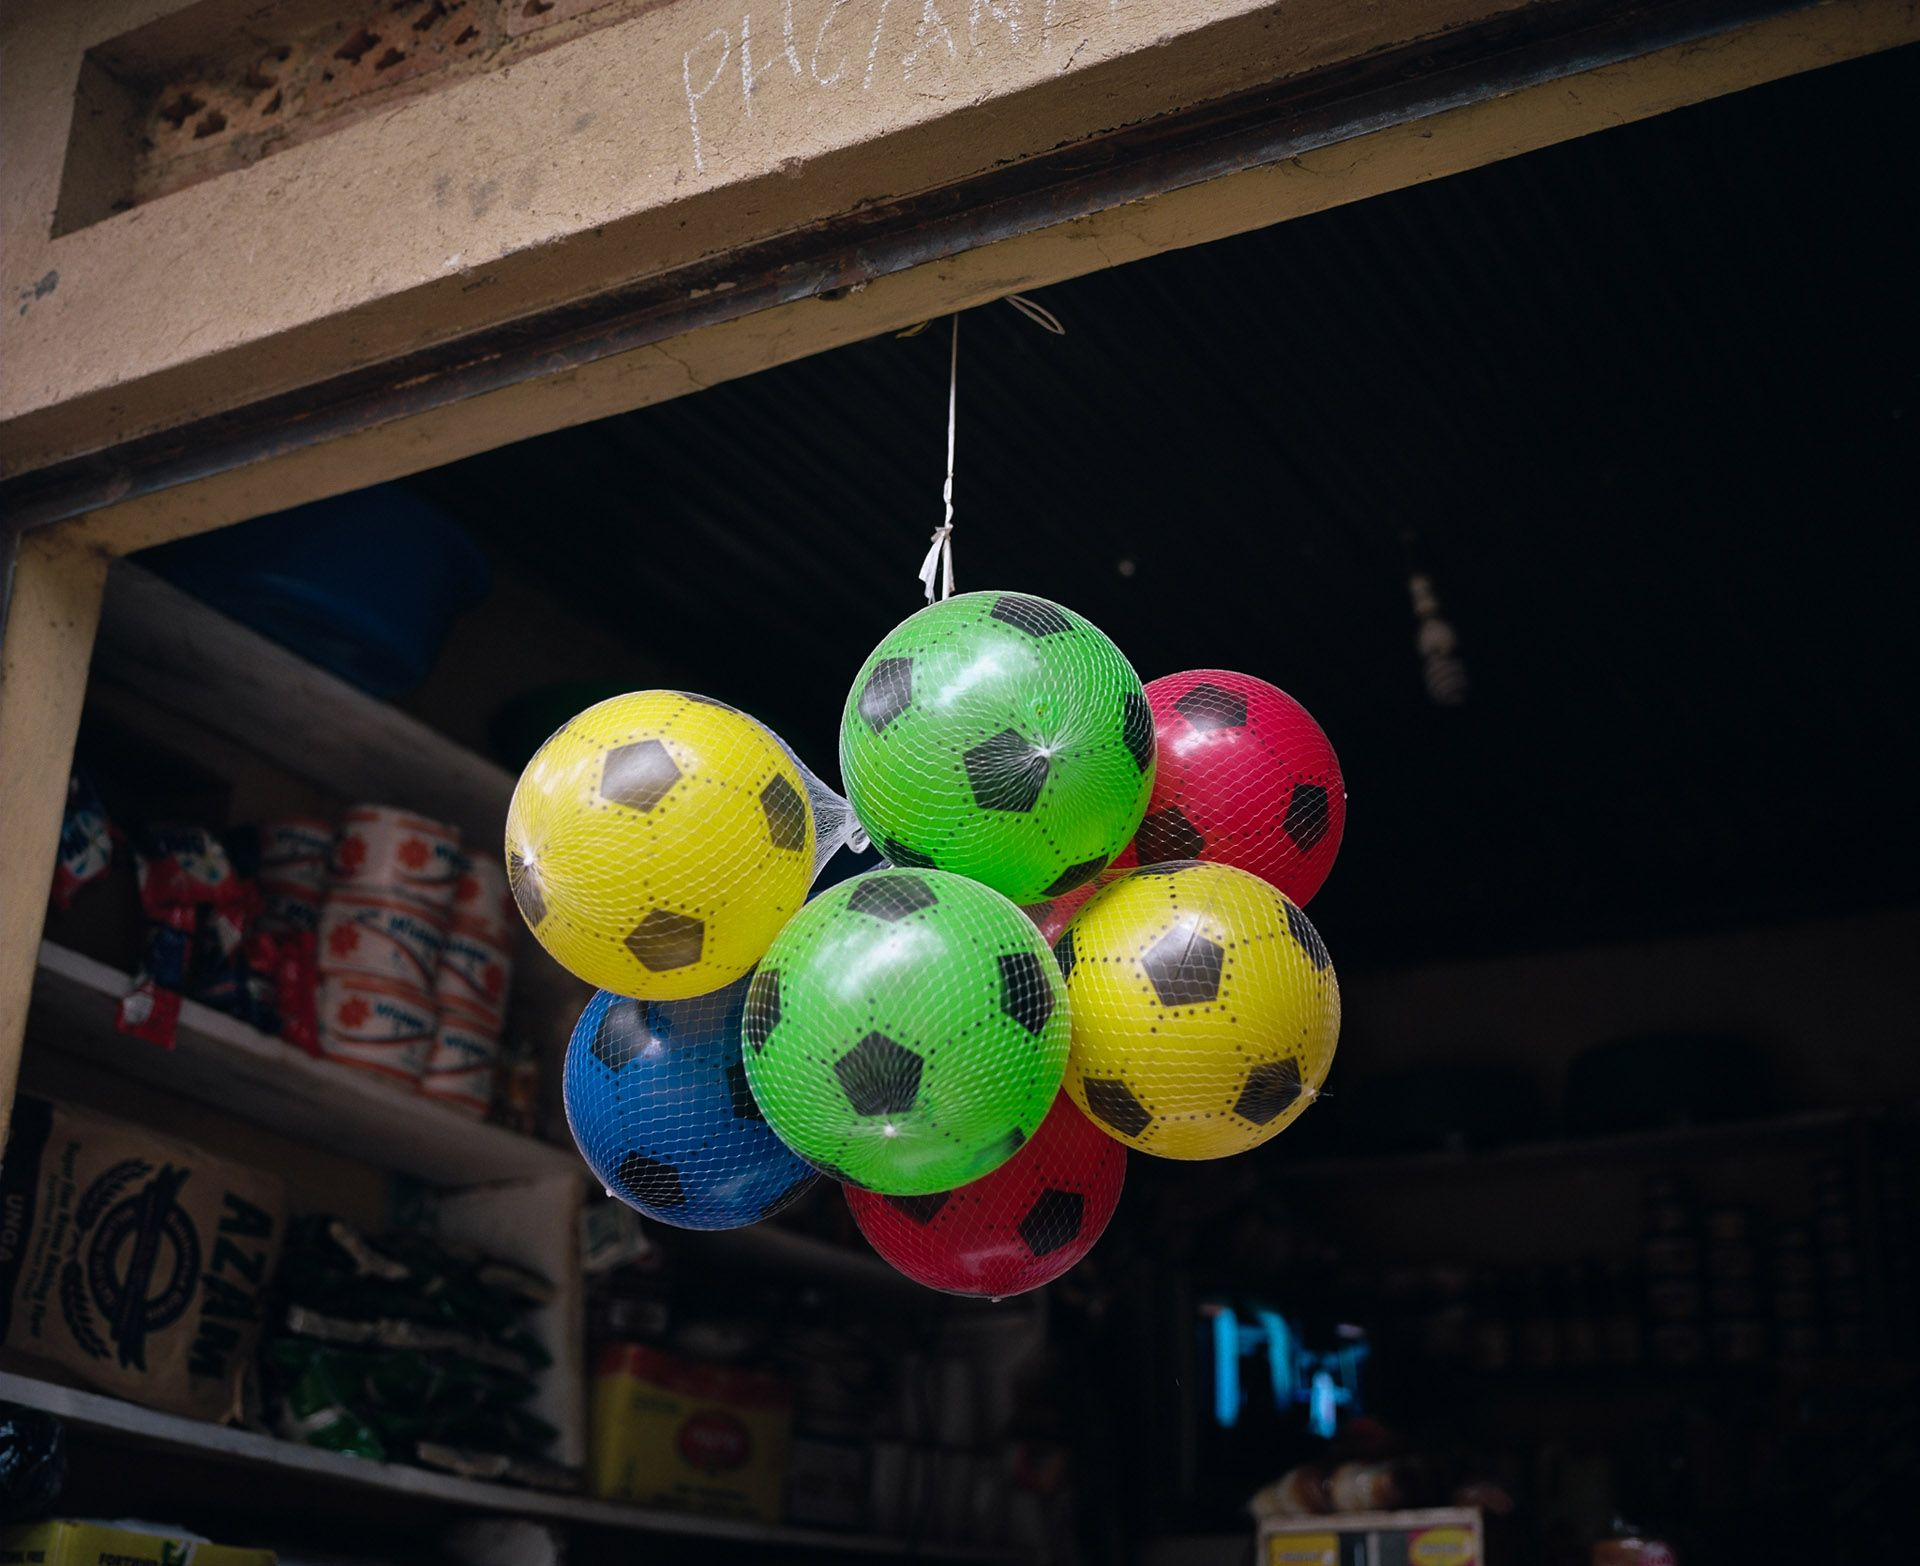 bunch of suspended plastic soccer balls by Alexi Hobbs in Uganda for Football for good with Sportsnet